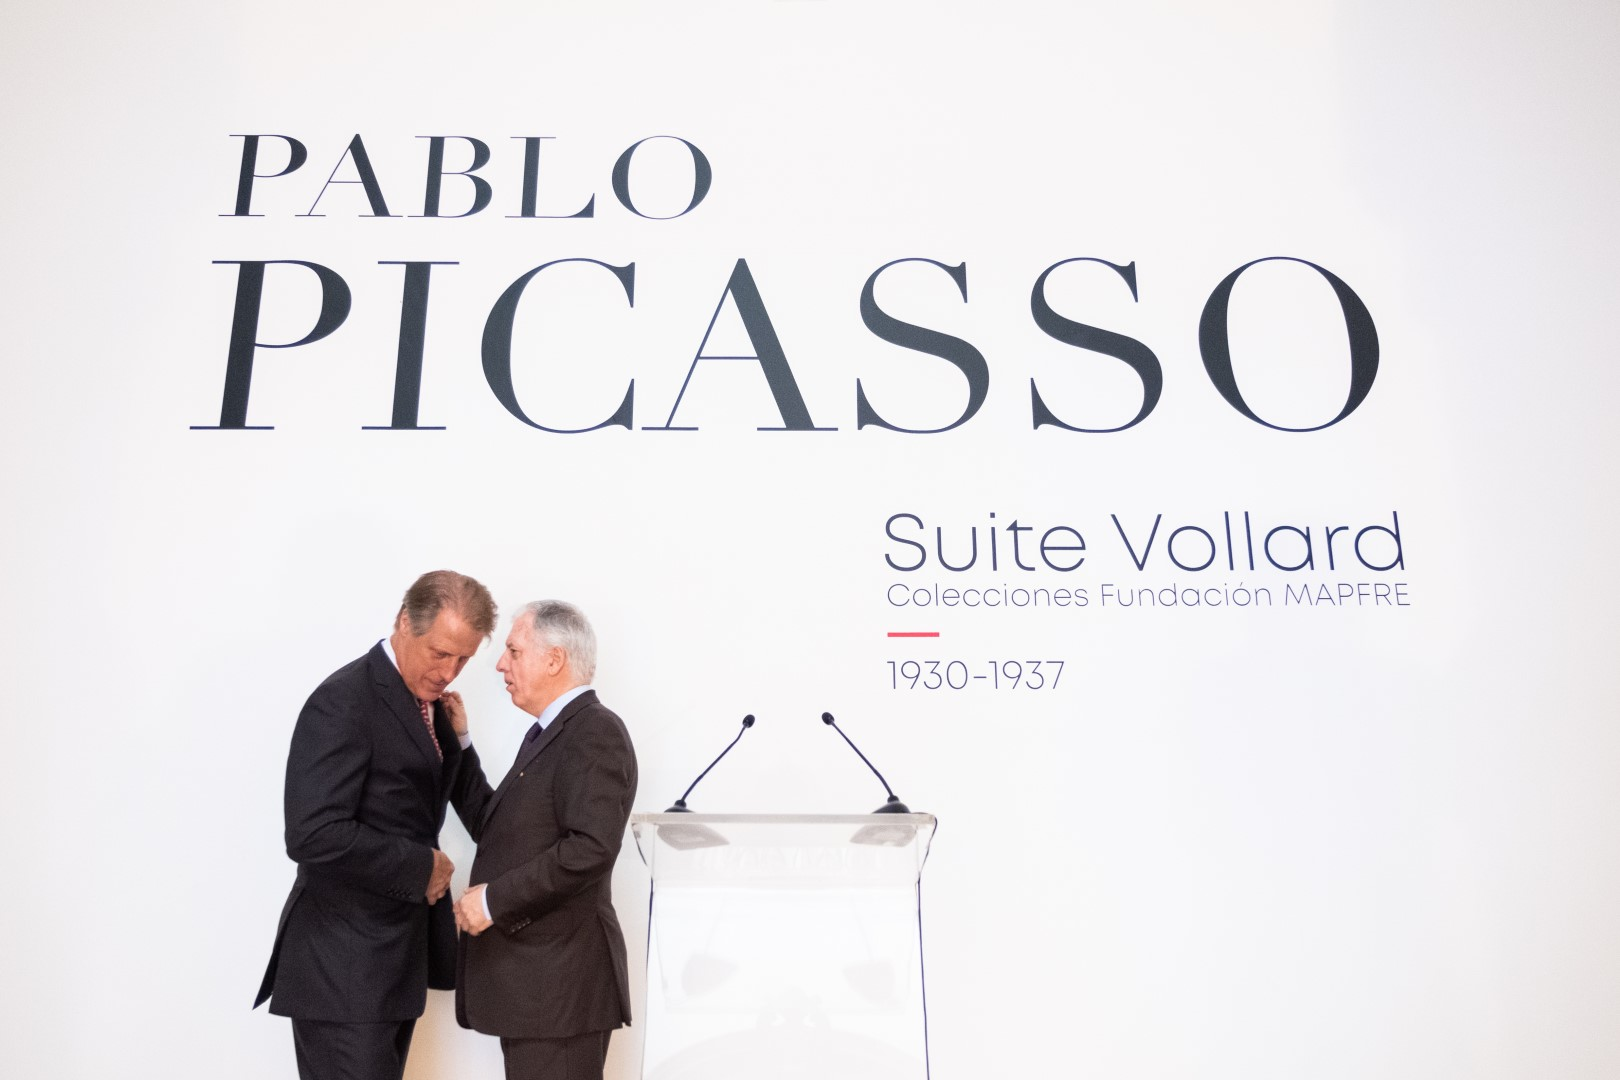 http://www.mmipo.pt/assets/misc/Not%C3%ADcias/2019/2019-05-30%20Inaugura%C3%A7%C3%A3o%20Picasso/DSCF2217.jpg